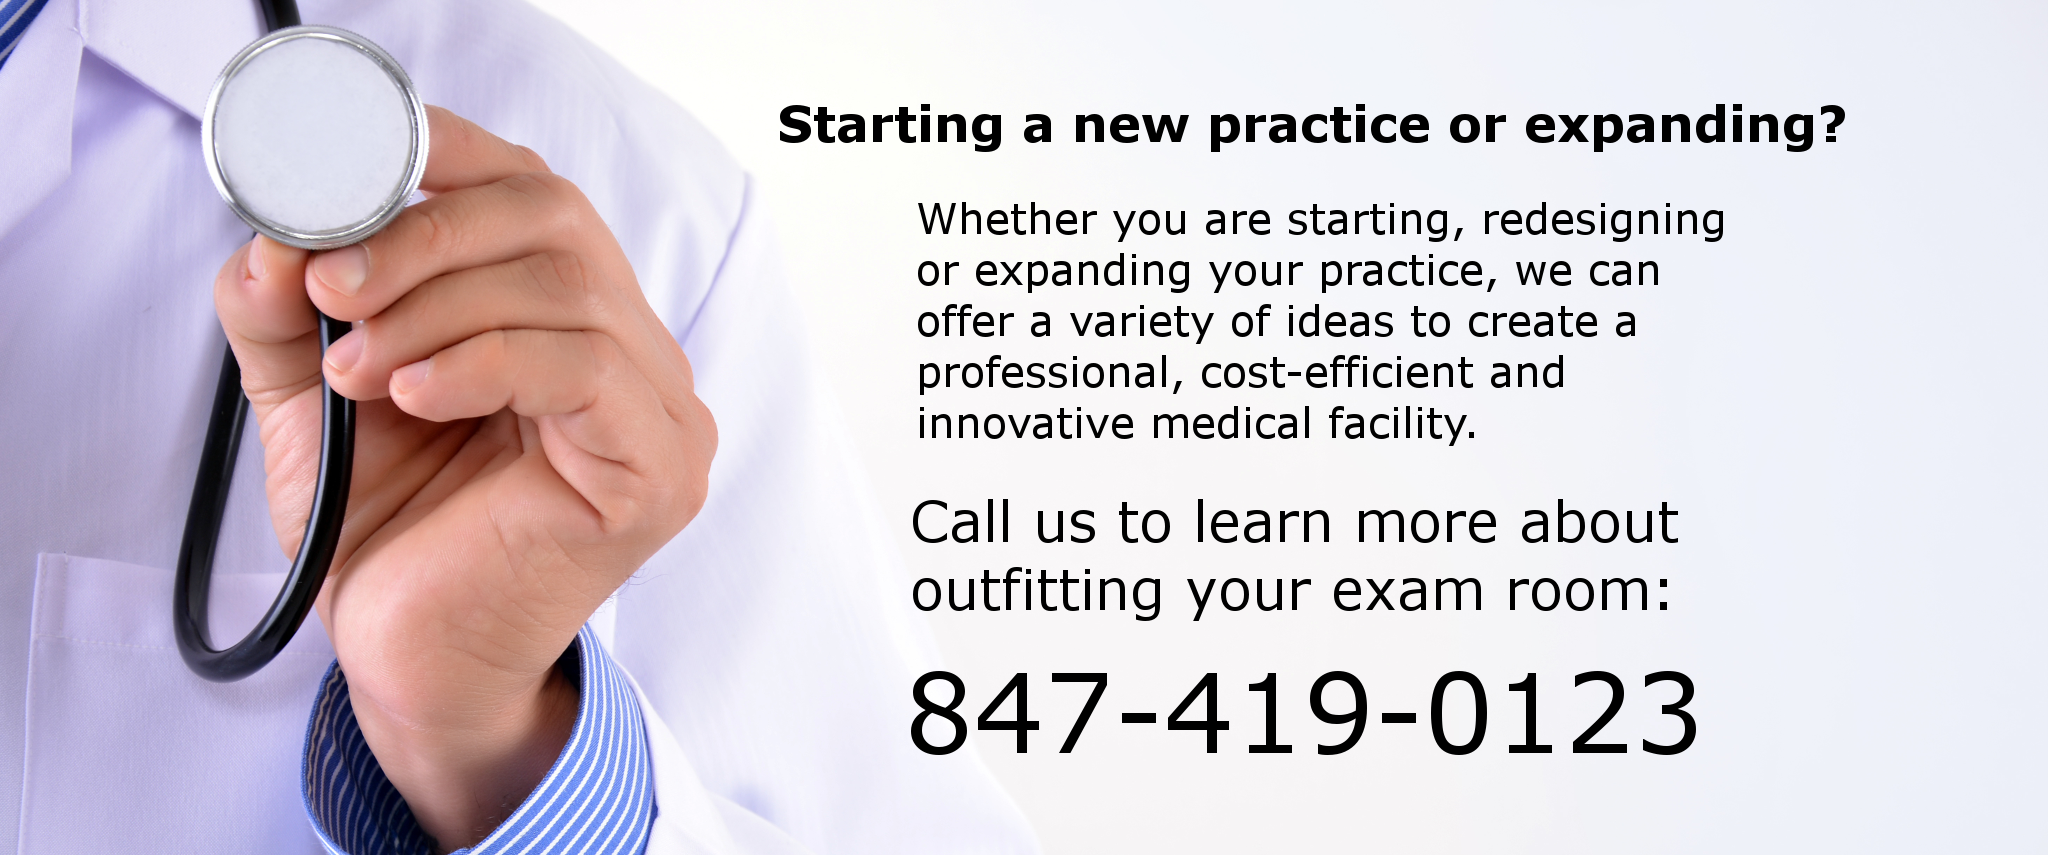 Starting a new practice or expanding?